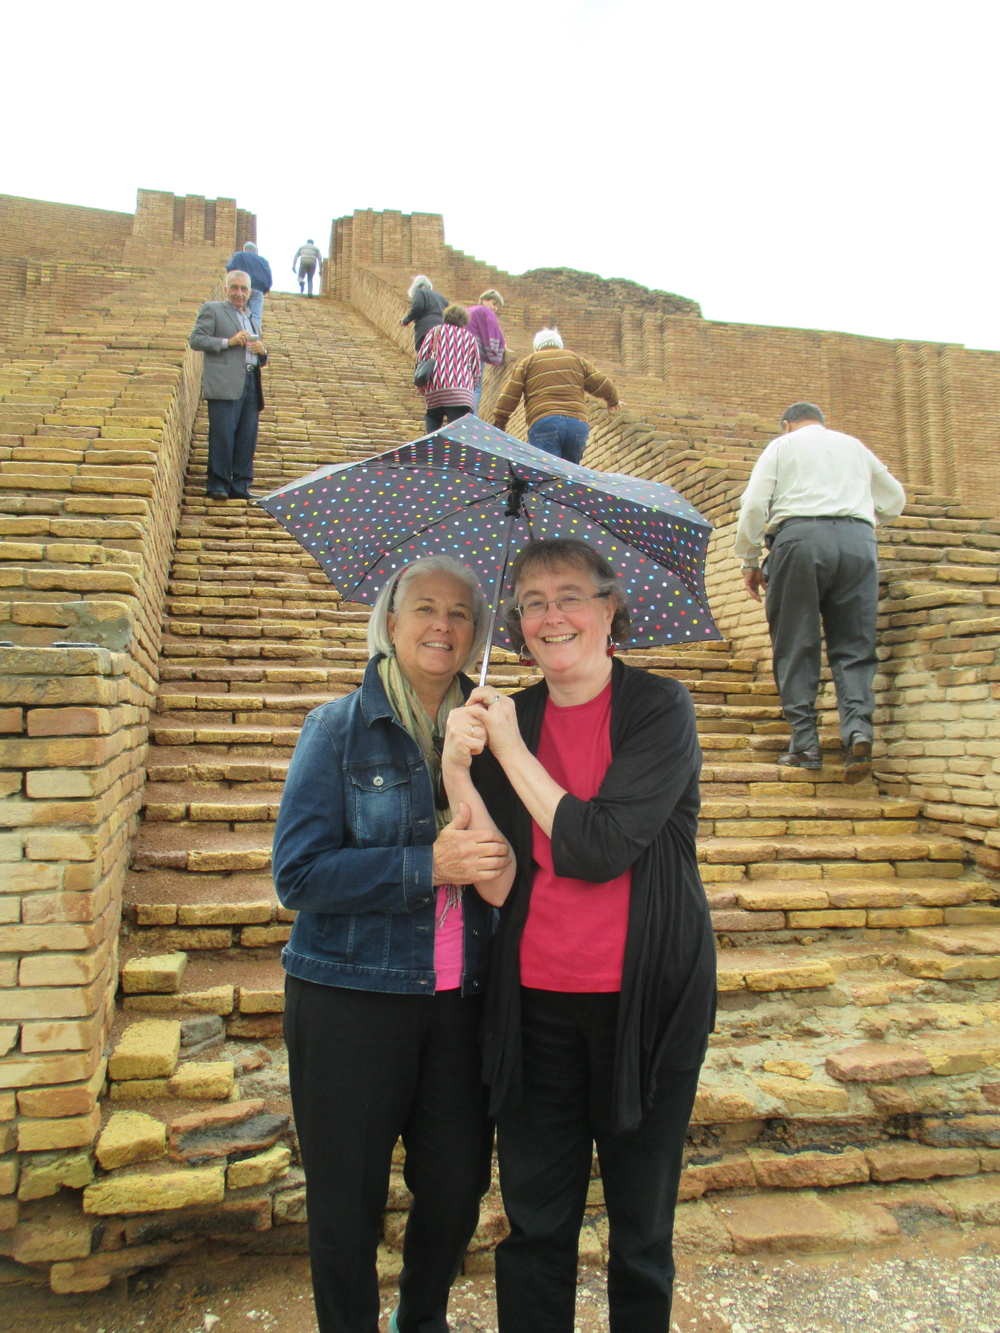 Roomies Babs and Julie with handy-for-the-day umbrella on the great staircase of the ziggurat.